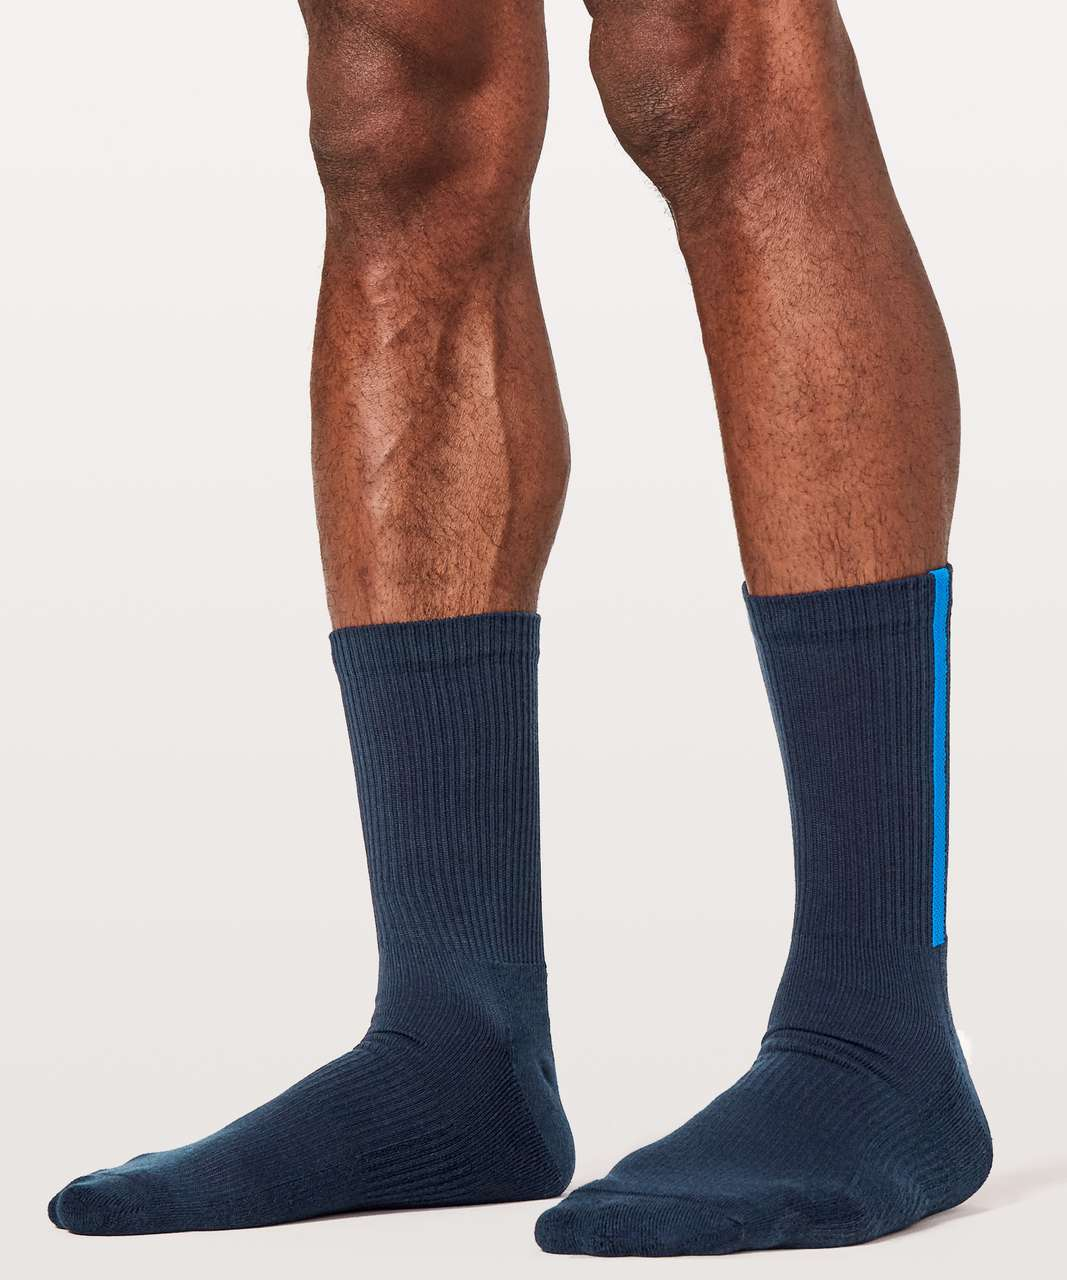 Lululemon Intent Crew Sock - True Navy / Shocking Blue